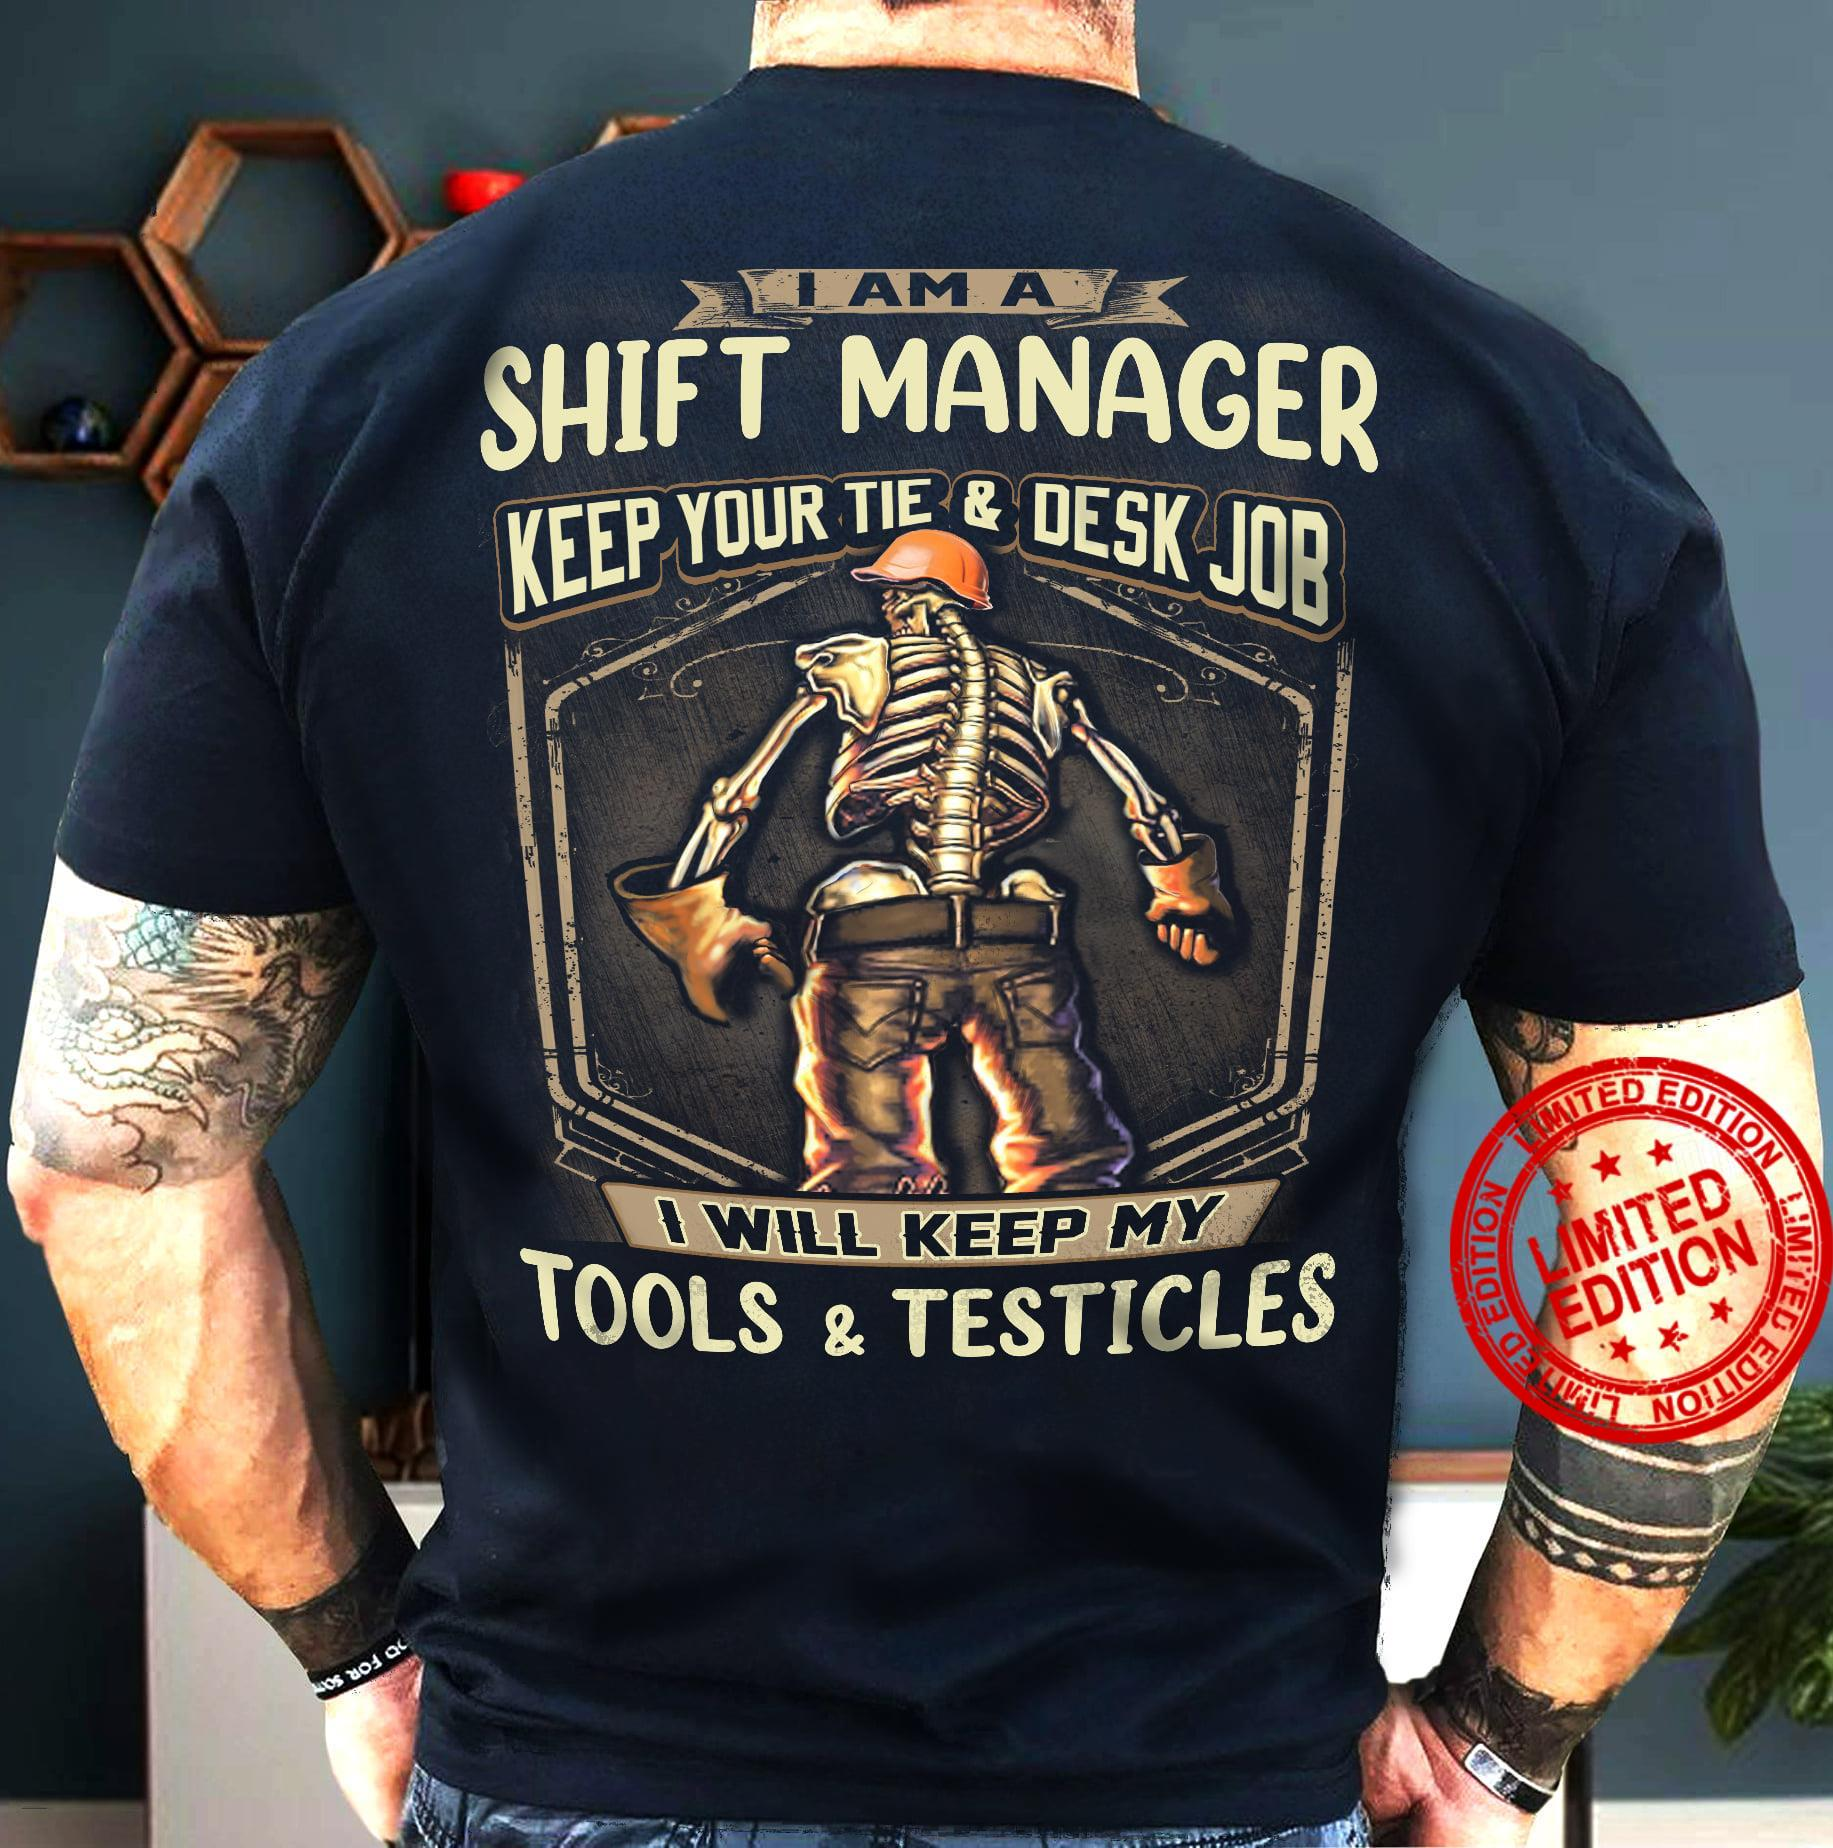 I Am A Shift Manager Keep Your Tie Desk Job I Will Keep My Tools Testicles Shirt